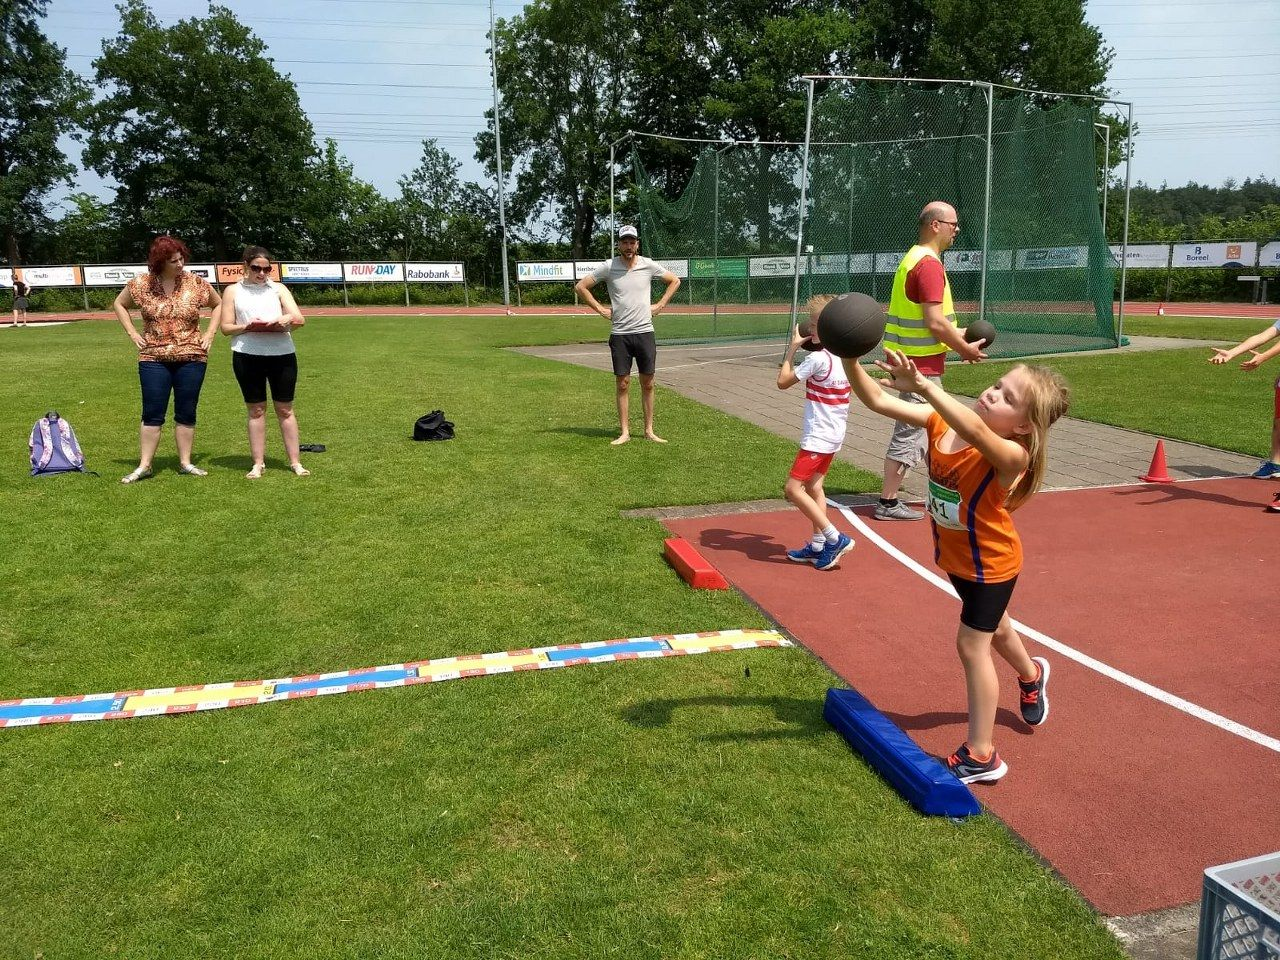 Climax - 2e Athletic Champs Stedenwedstrijd 2018 Deventer - Medicienbalstoten